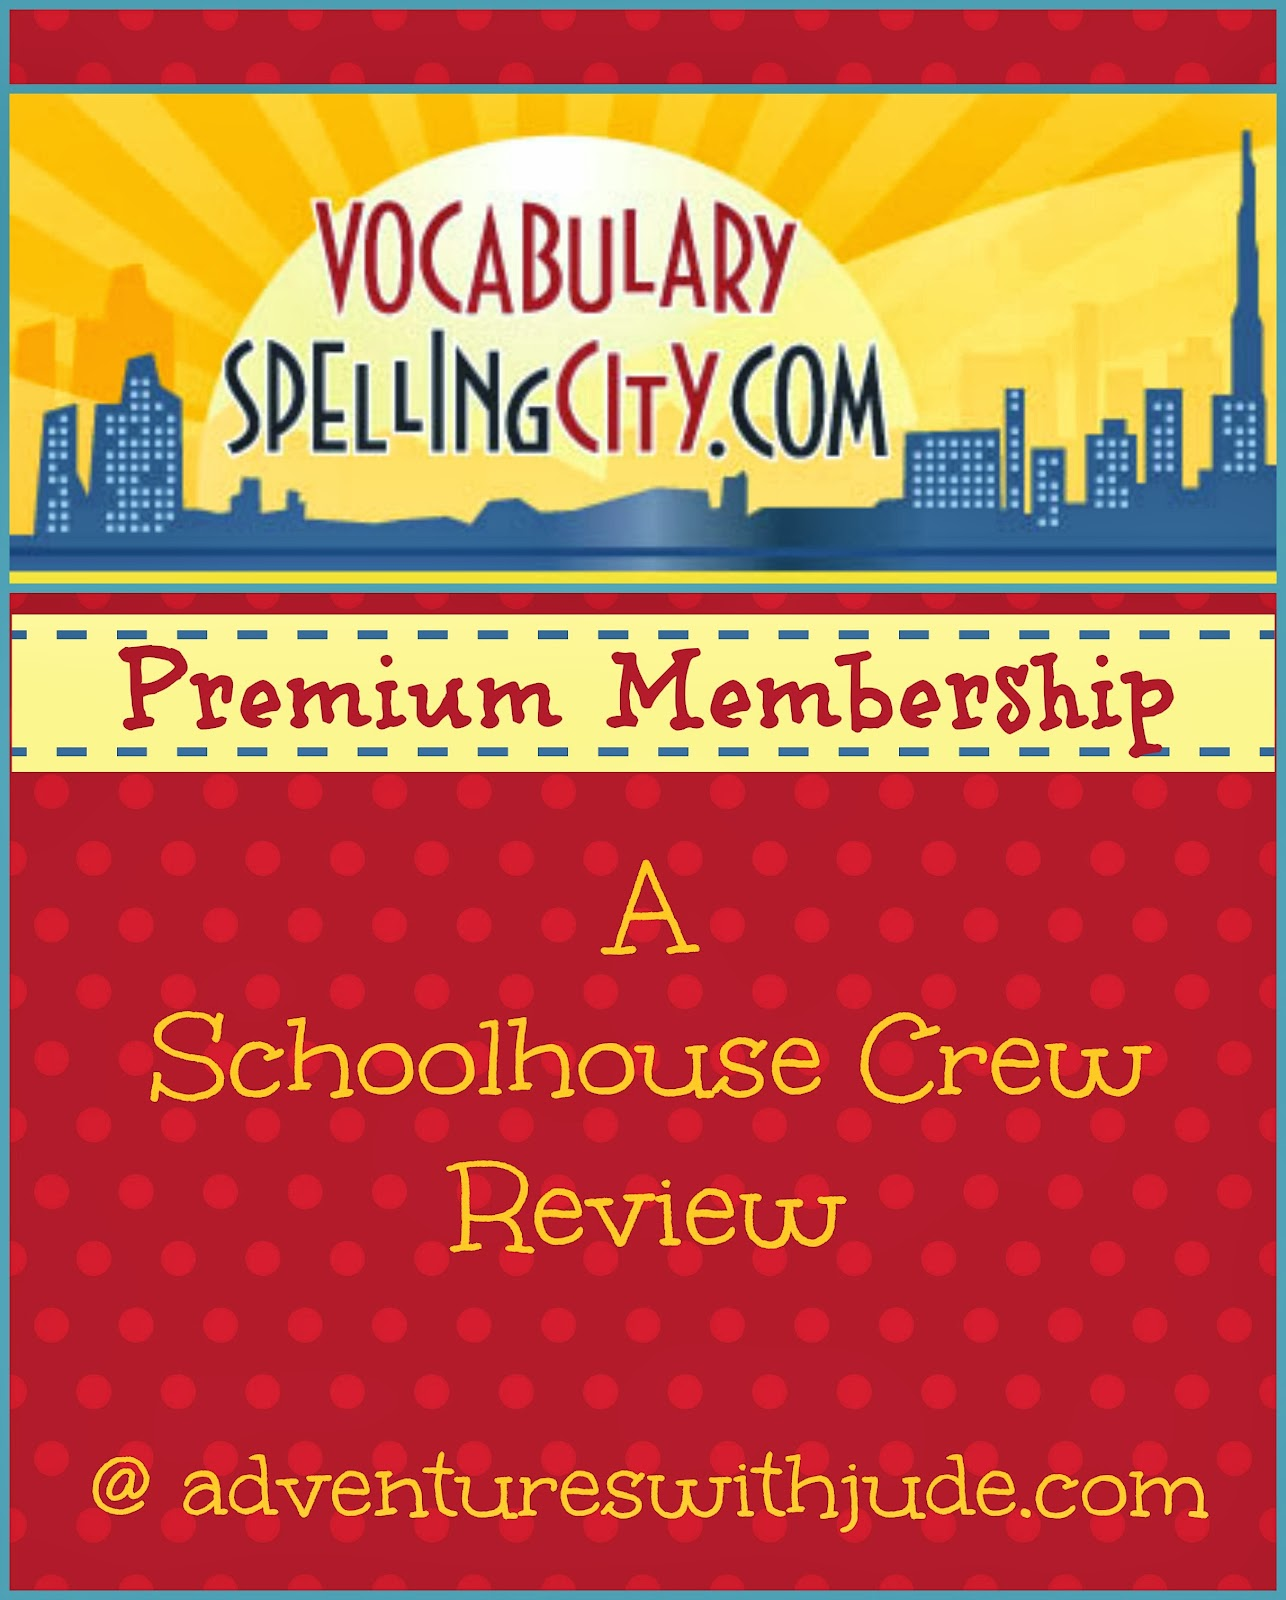 Vocabularyspellingcity s premium membership is a program that i am very very happy to have had to opportunity to review a nice balance of traditional